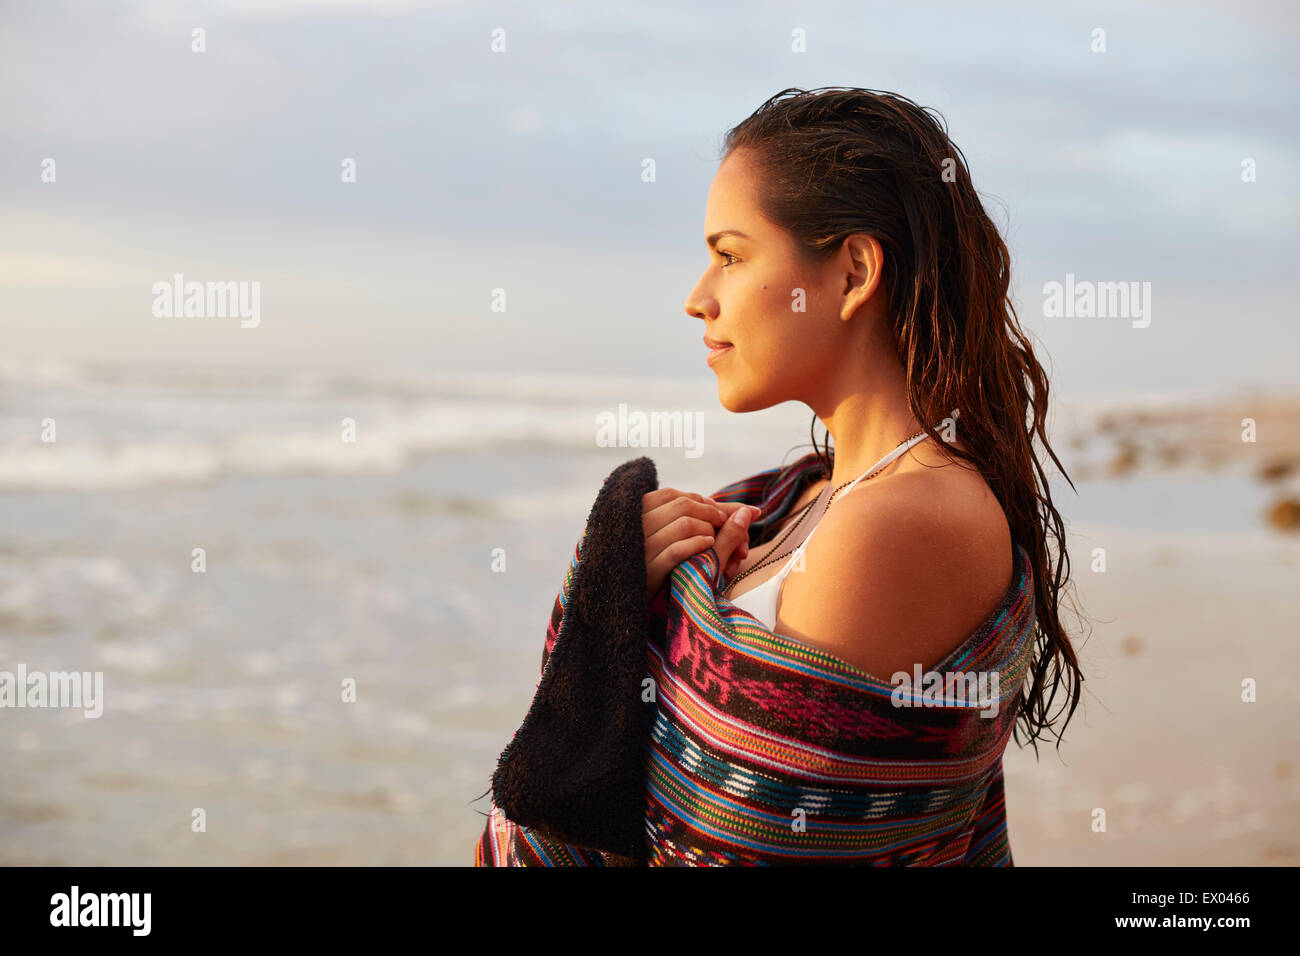 Portrait of young woman wrapped in towel on beach, San Diego, California, USA Banque D'Images